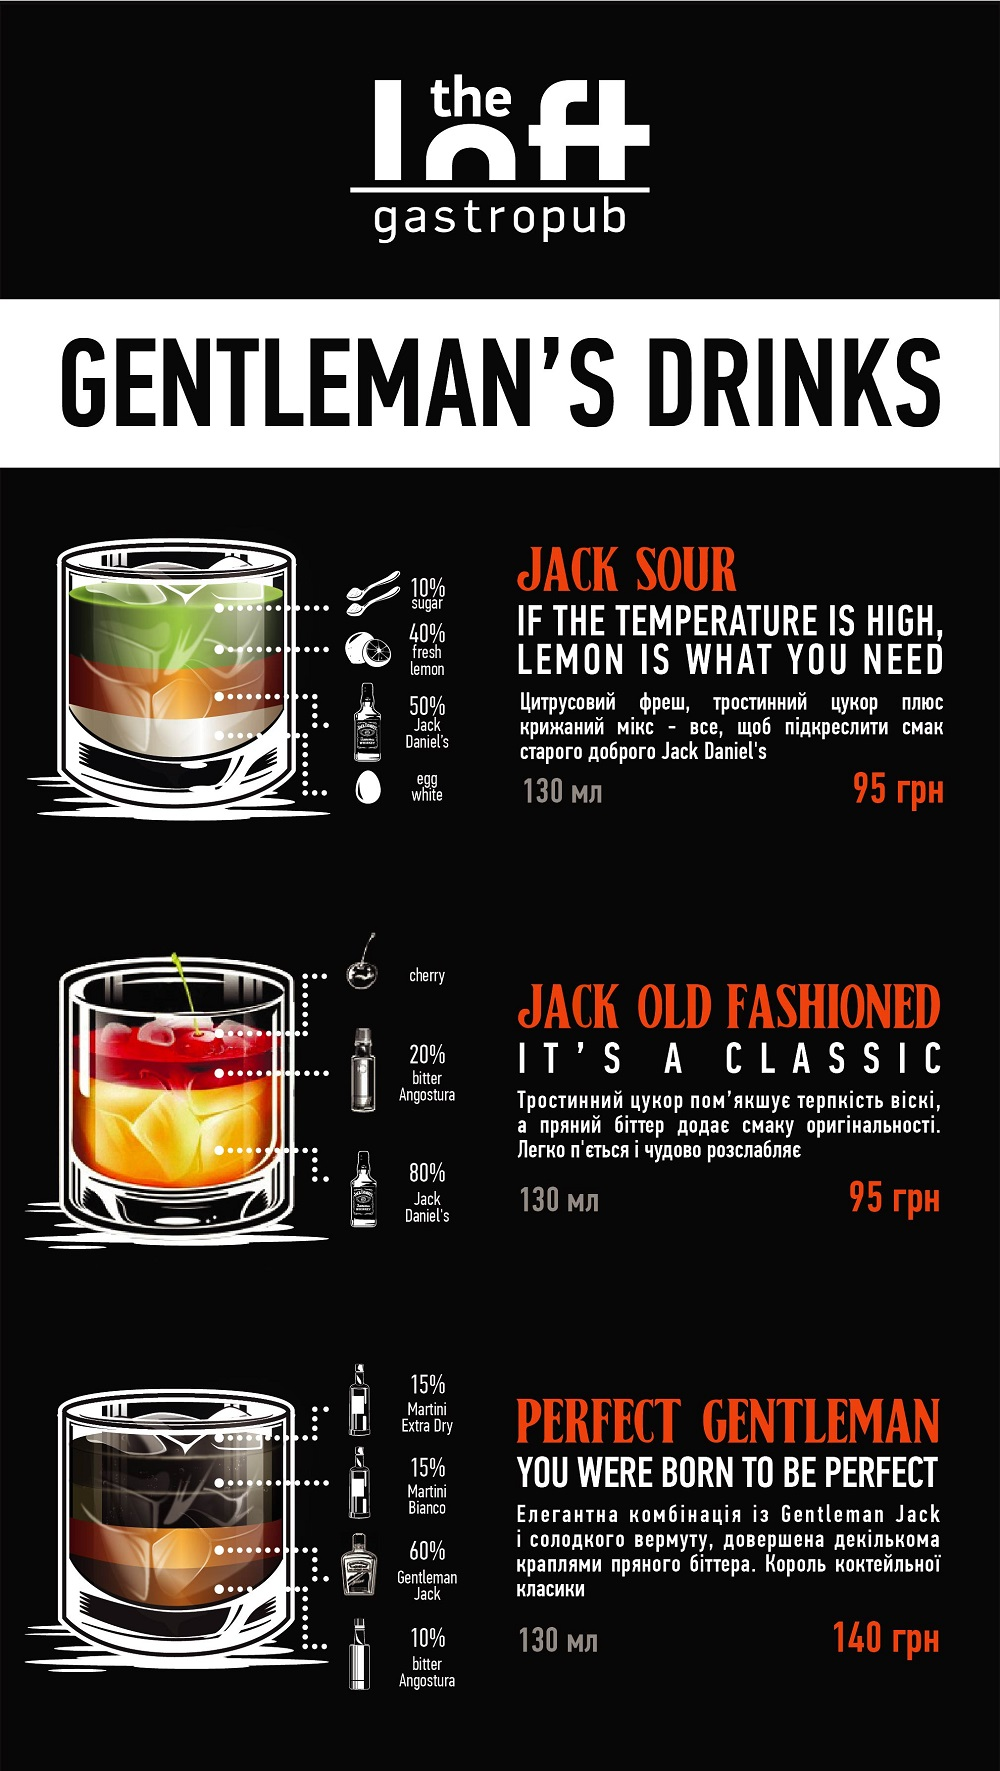 Gentlemans drinks!